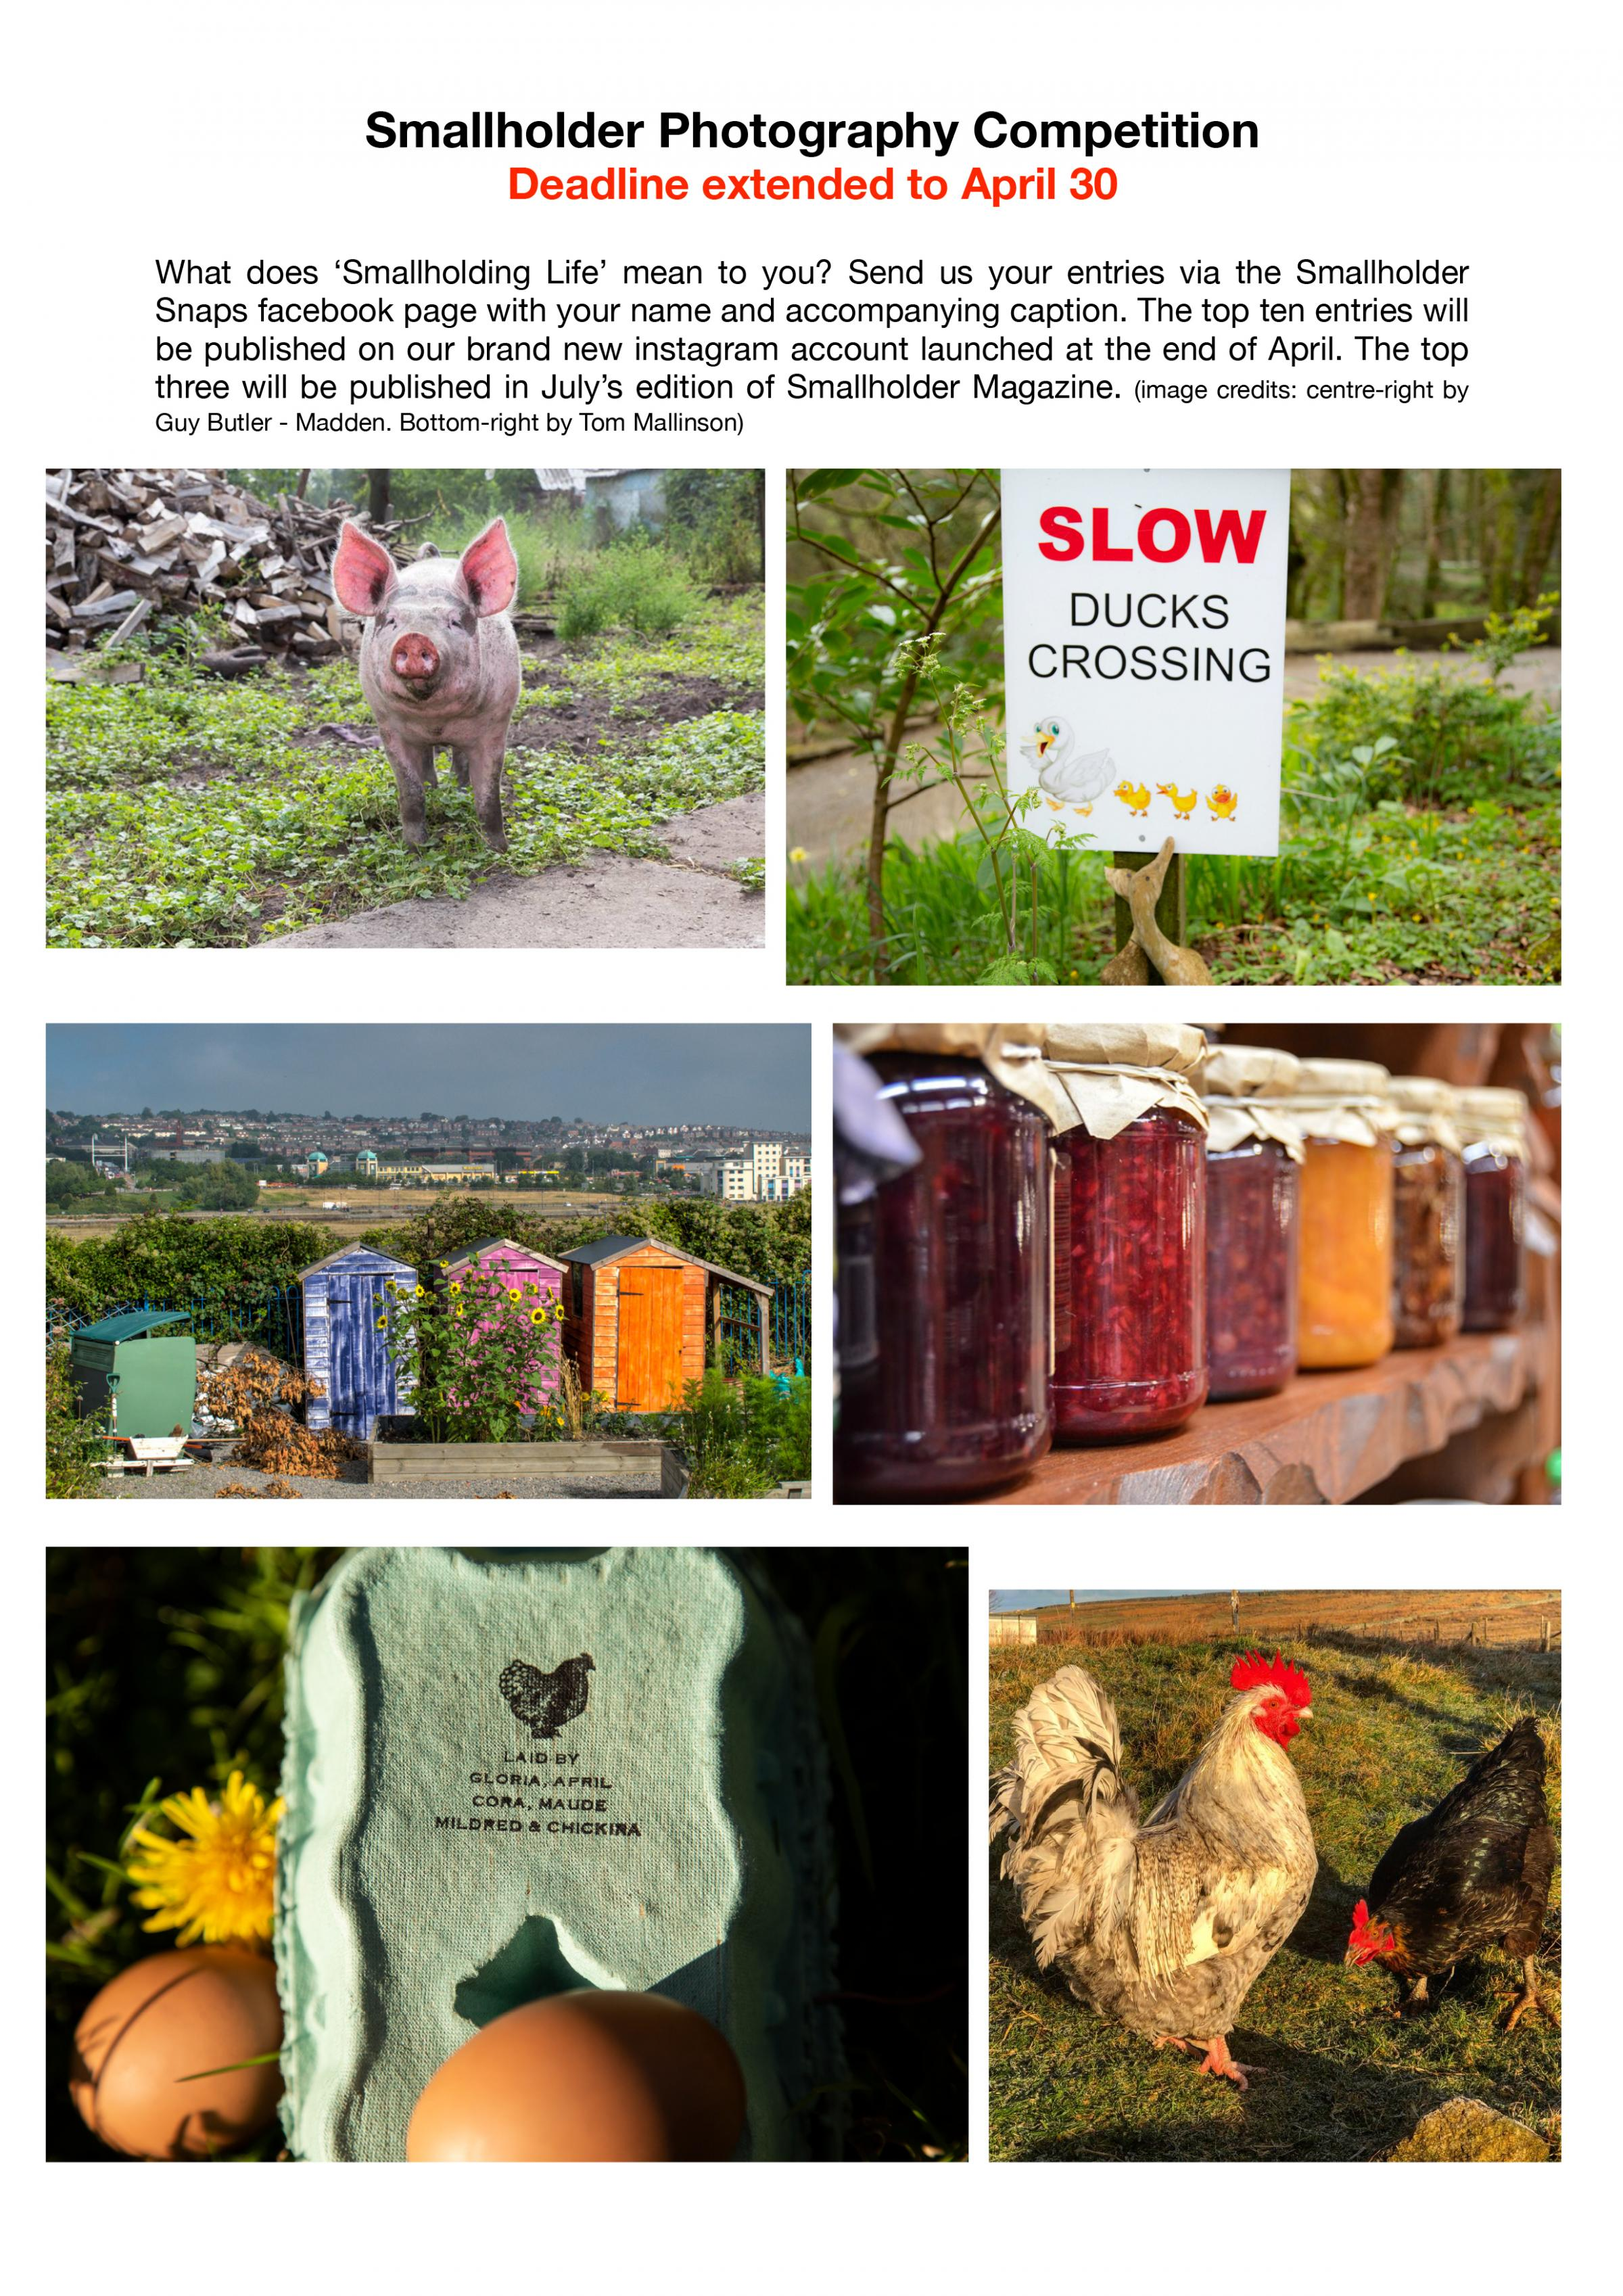 Smallholding Life photography competition